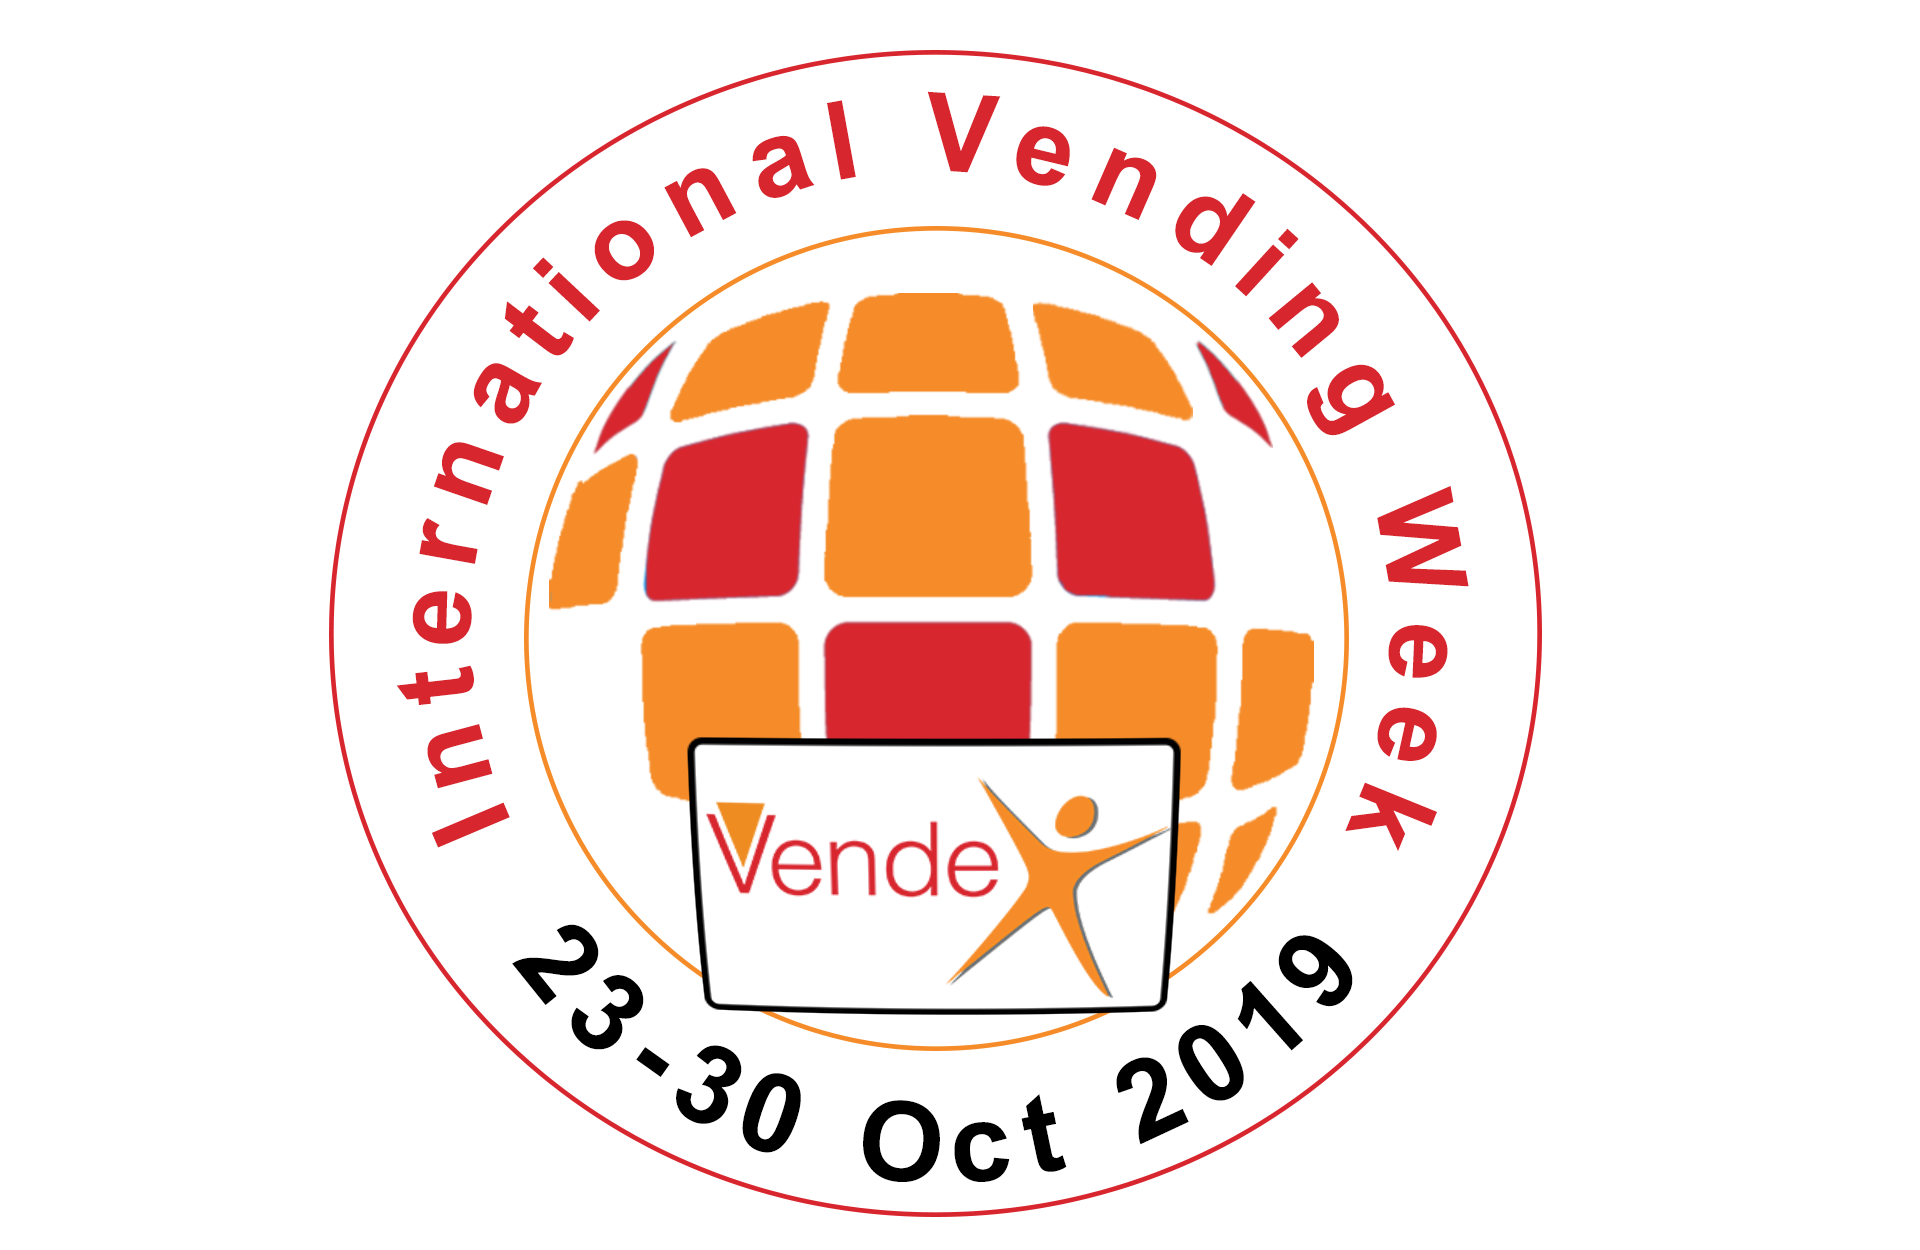 http://www.vend-ex.com/international-vending-week-2019/